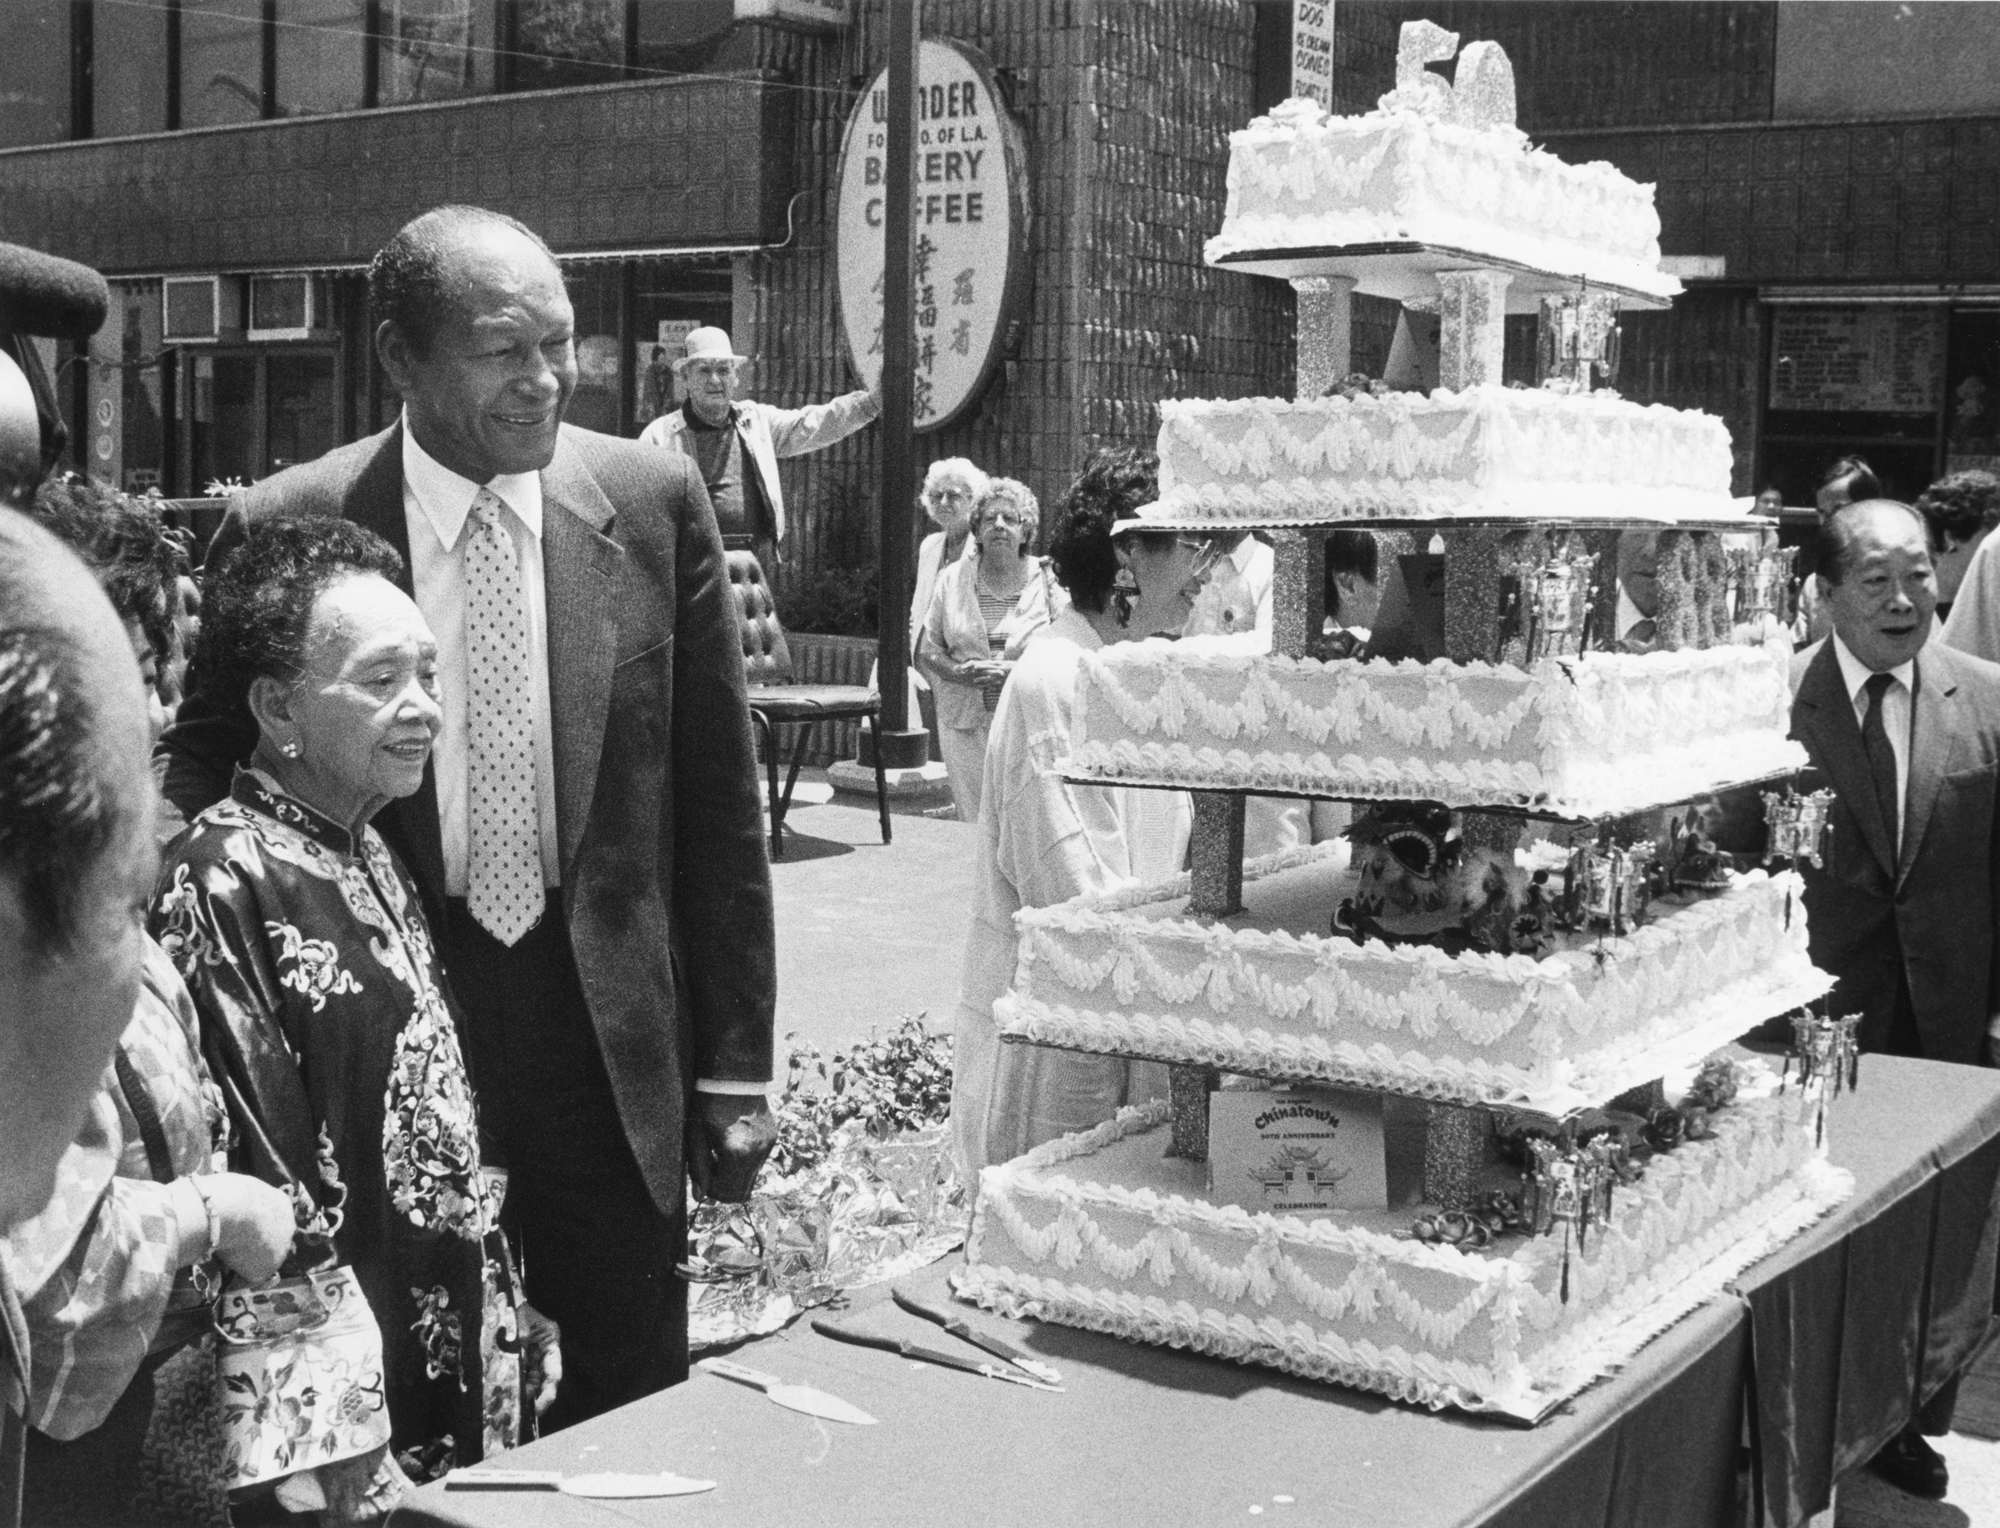 Mayor Tom Bradley and community leader and restaurateur Mama Quon celebrate the 50th Anniversary of New Chinatown (1988)